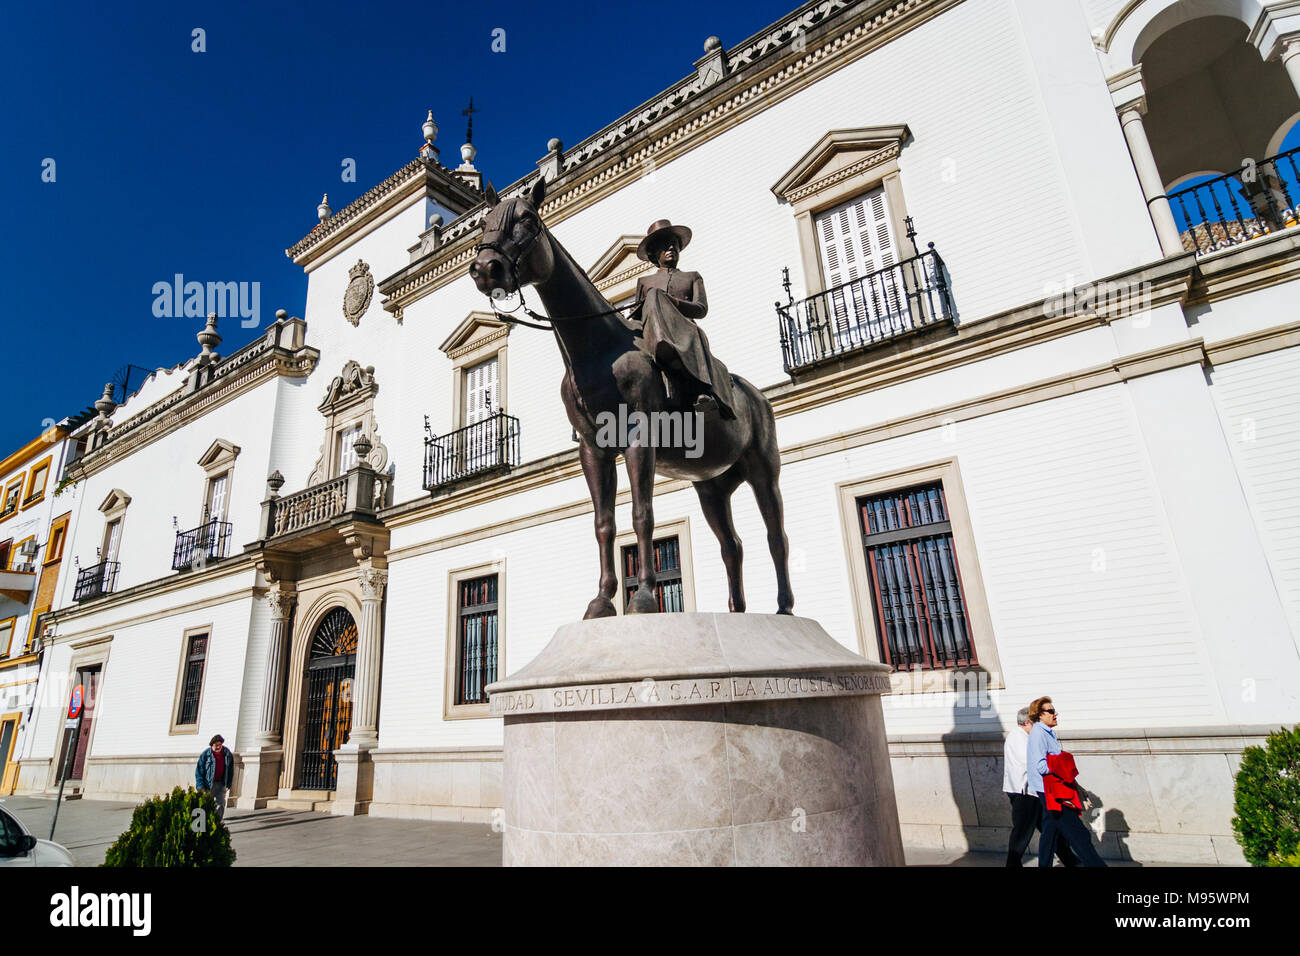 Seville, Andalusia, Spain : People walk past the equestrian monument to the Countess of Barcelona by sculptor Miguel García Delgado by the headquarter - Stock Image